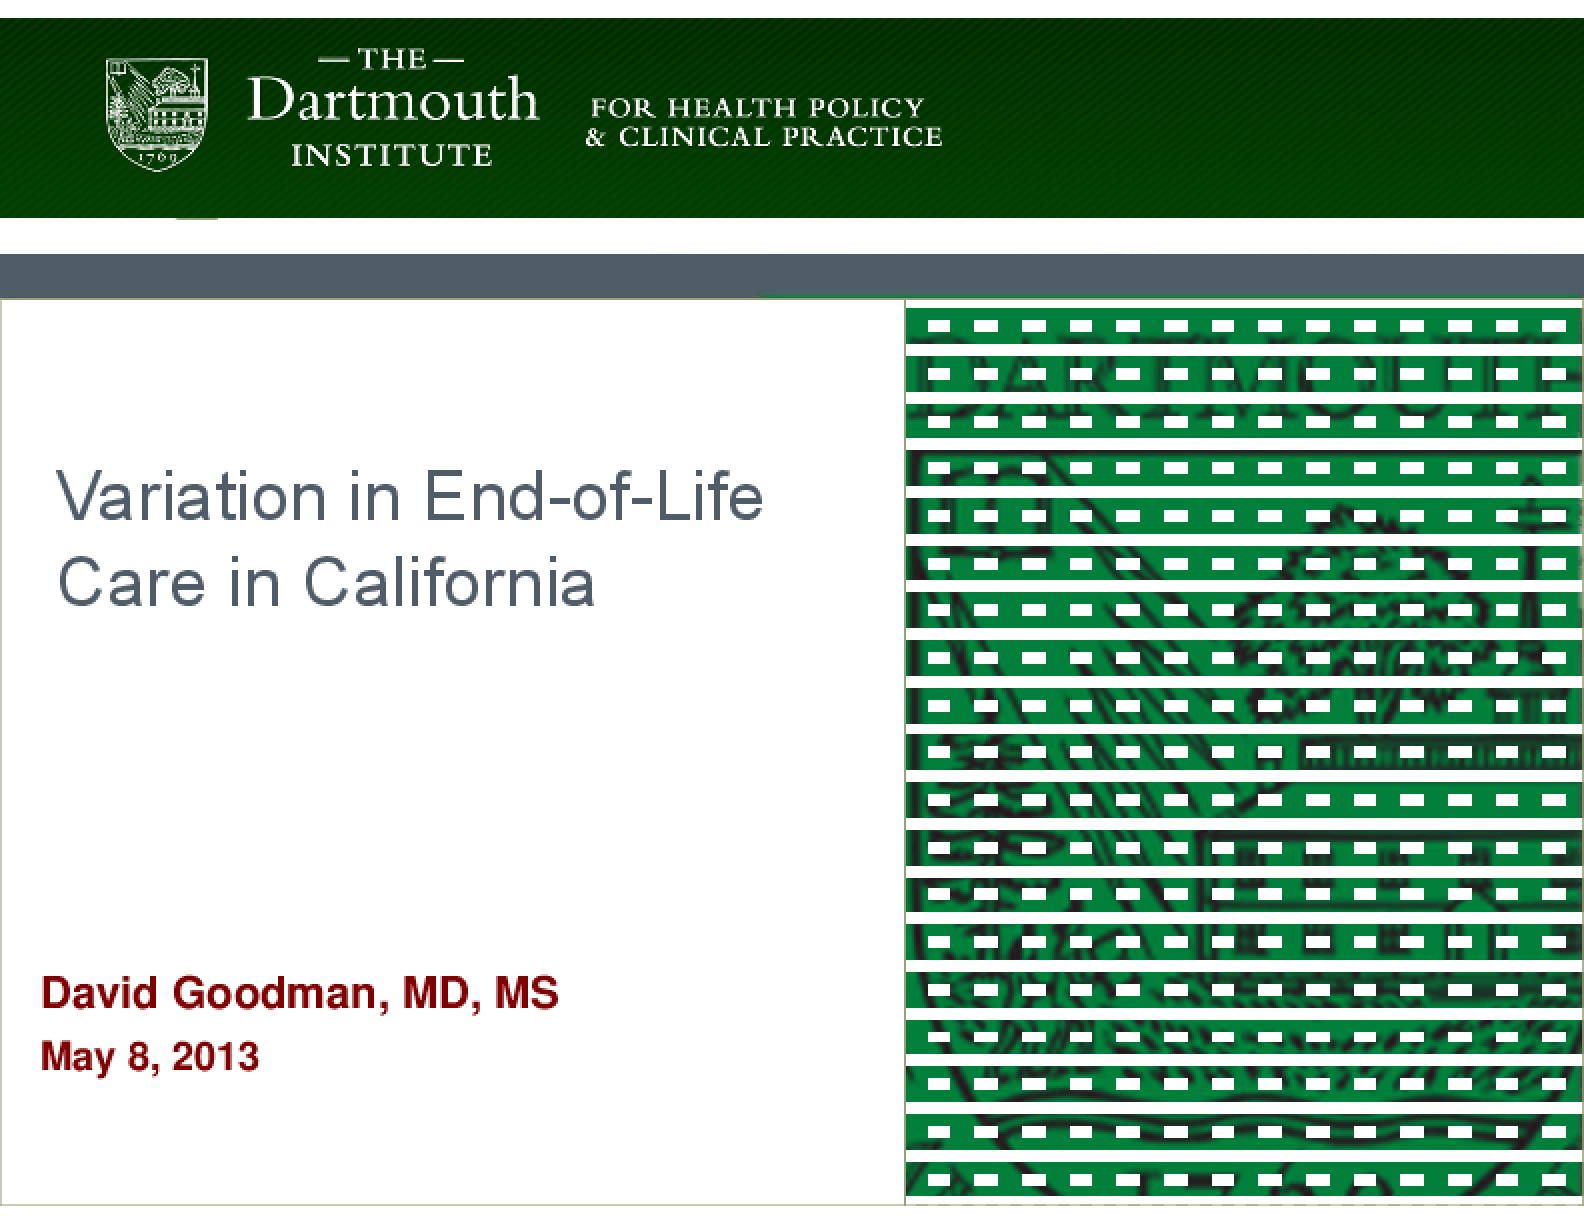 Variation in End-of-Life Care in California